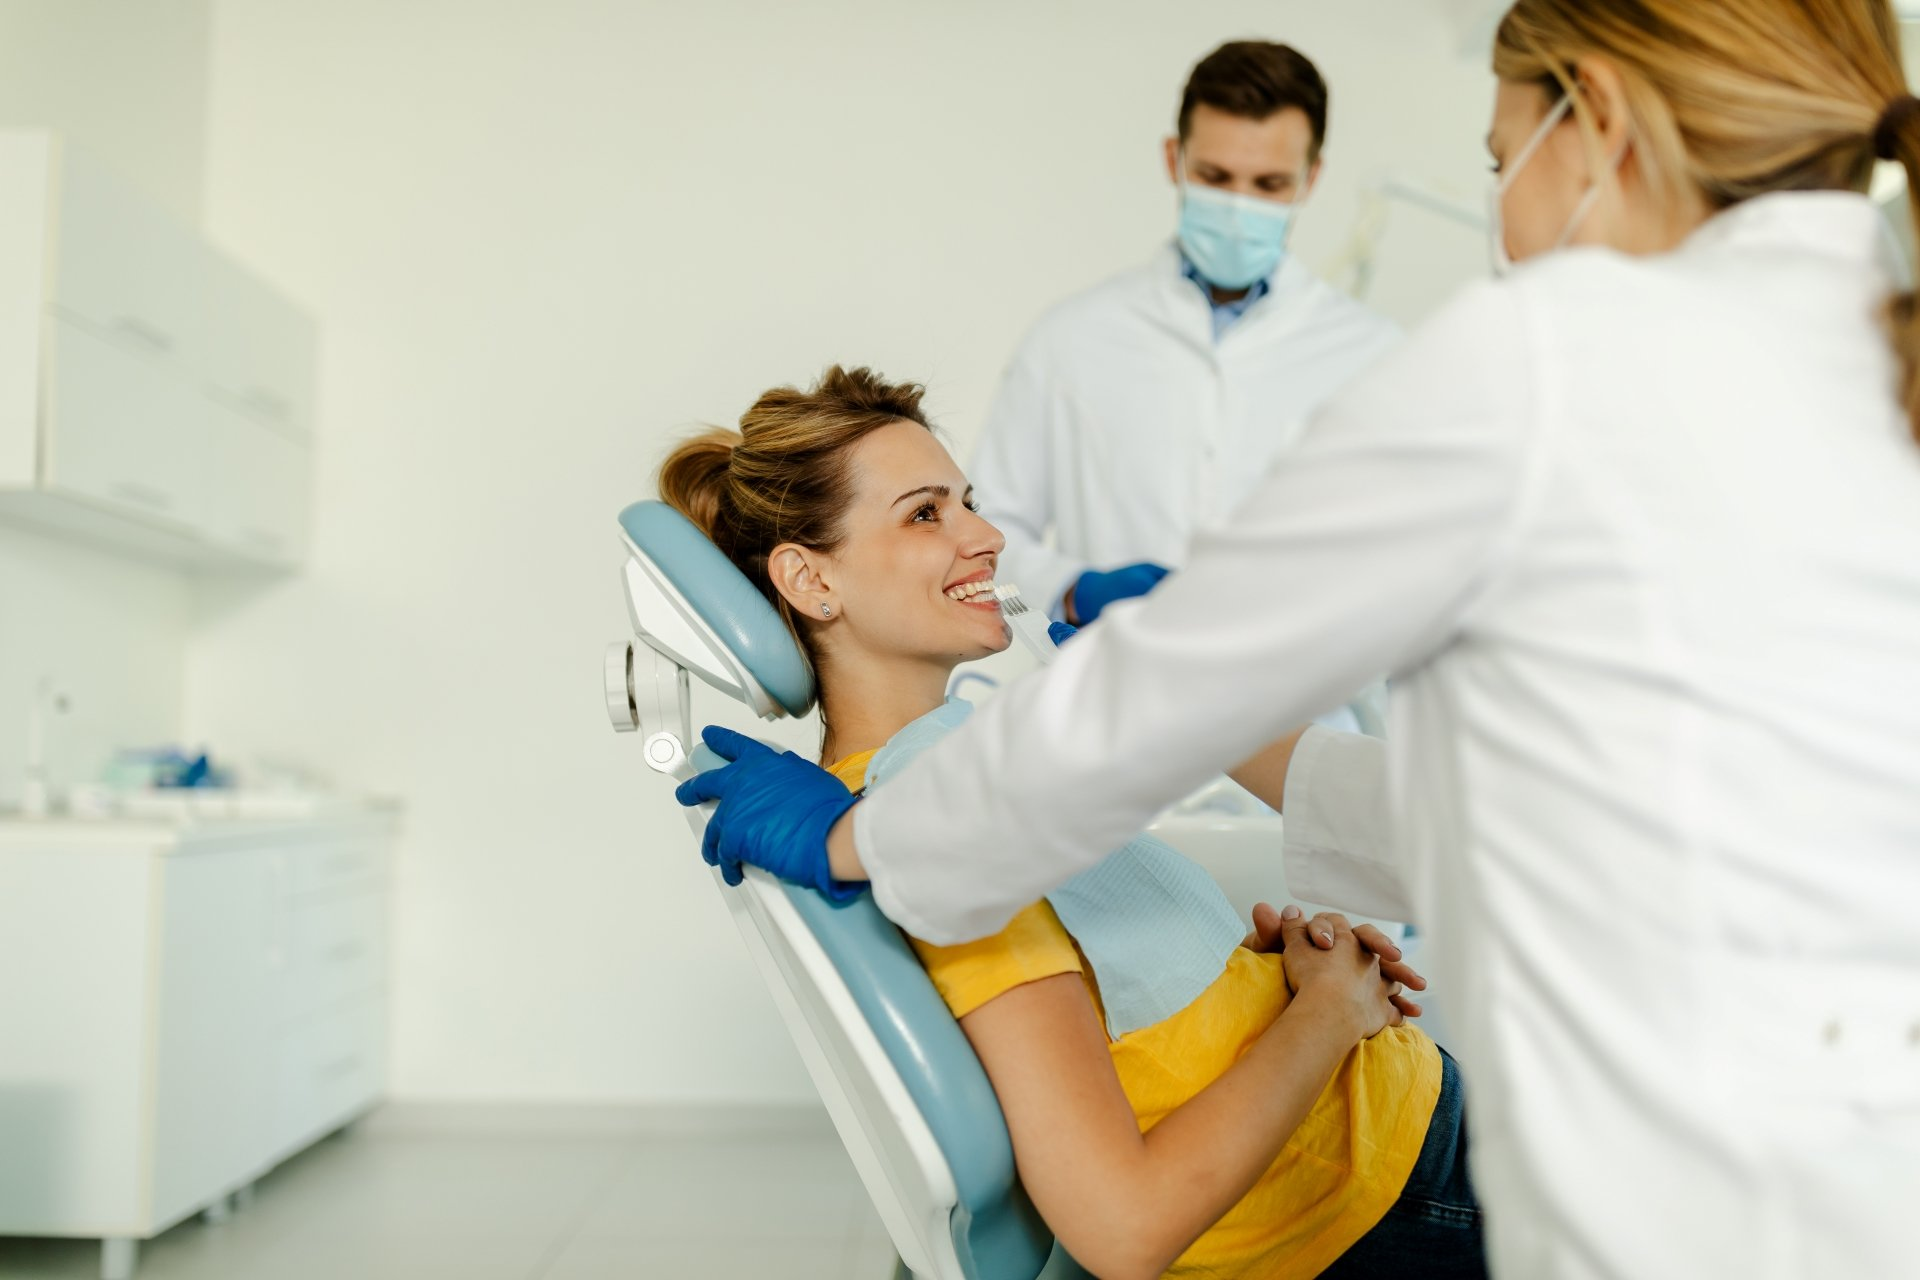 Dentist Talks to Patient about Dental Care